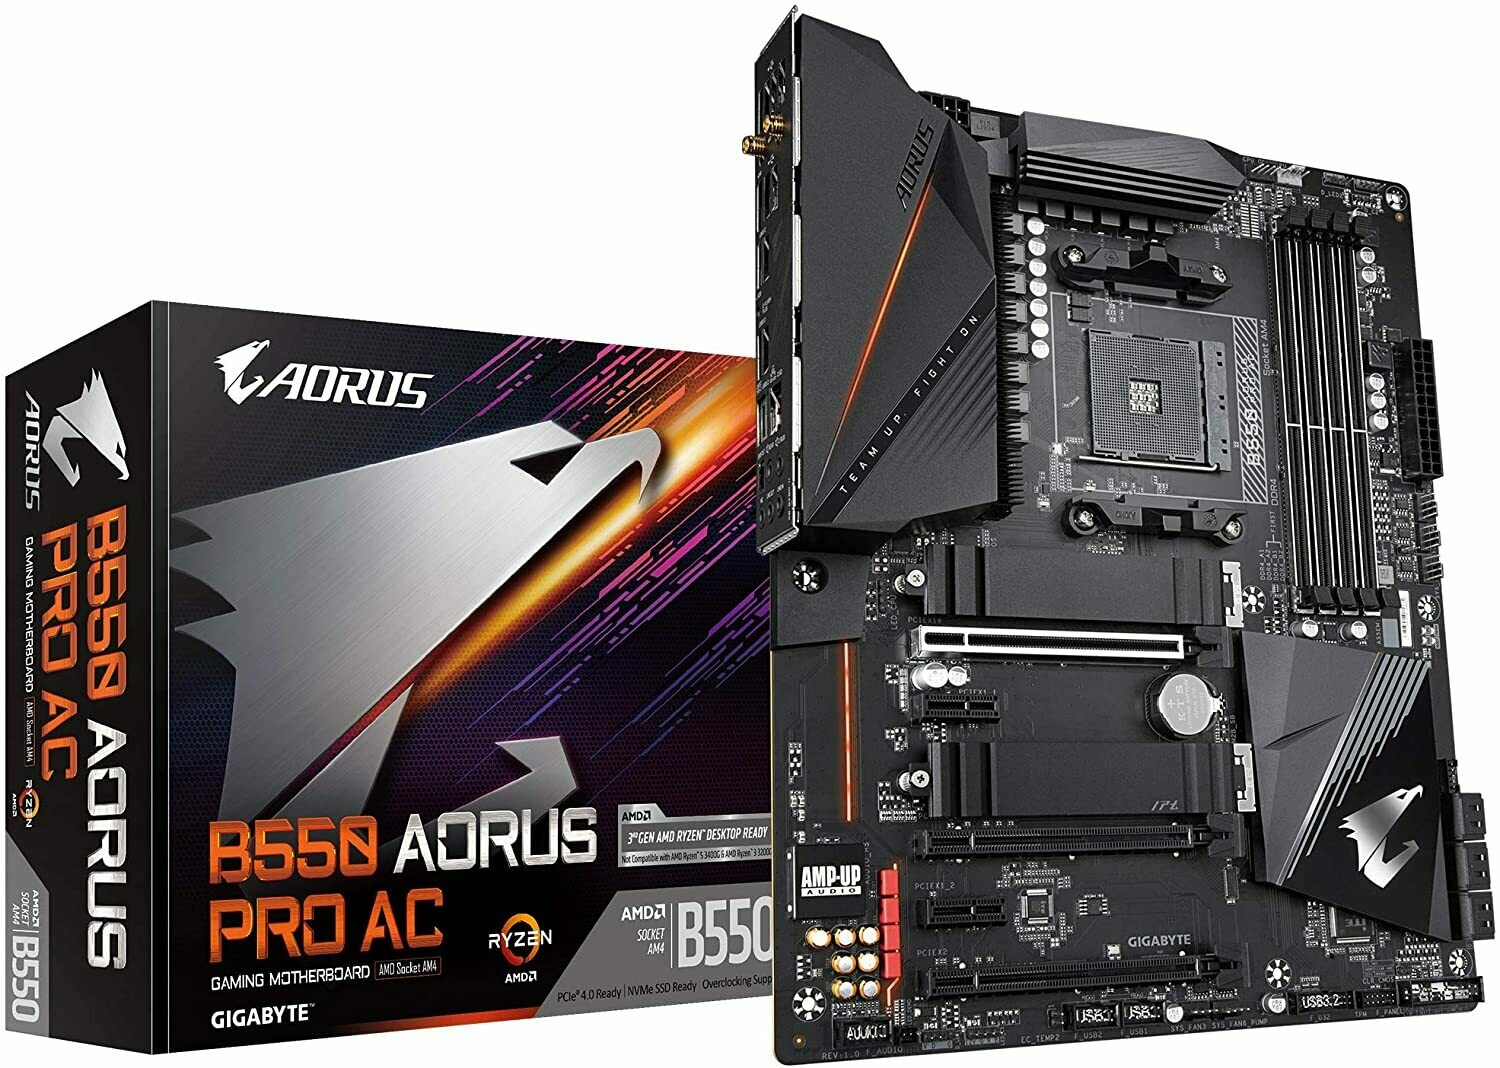 GIGABYTE B550 AORUS PRO AC (Using an RX 5000 Series Graphics Cards)